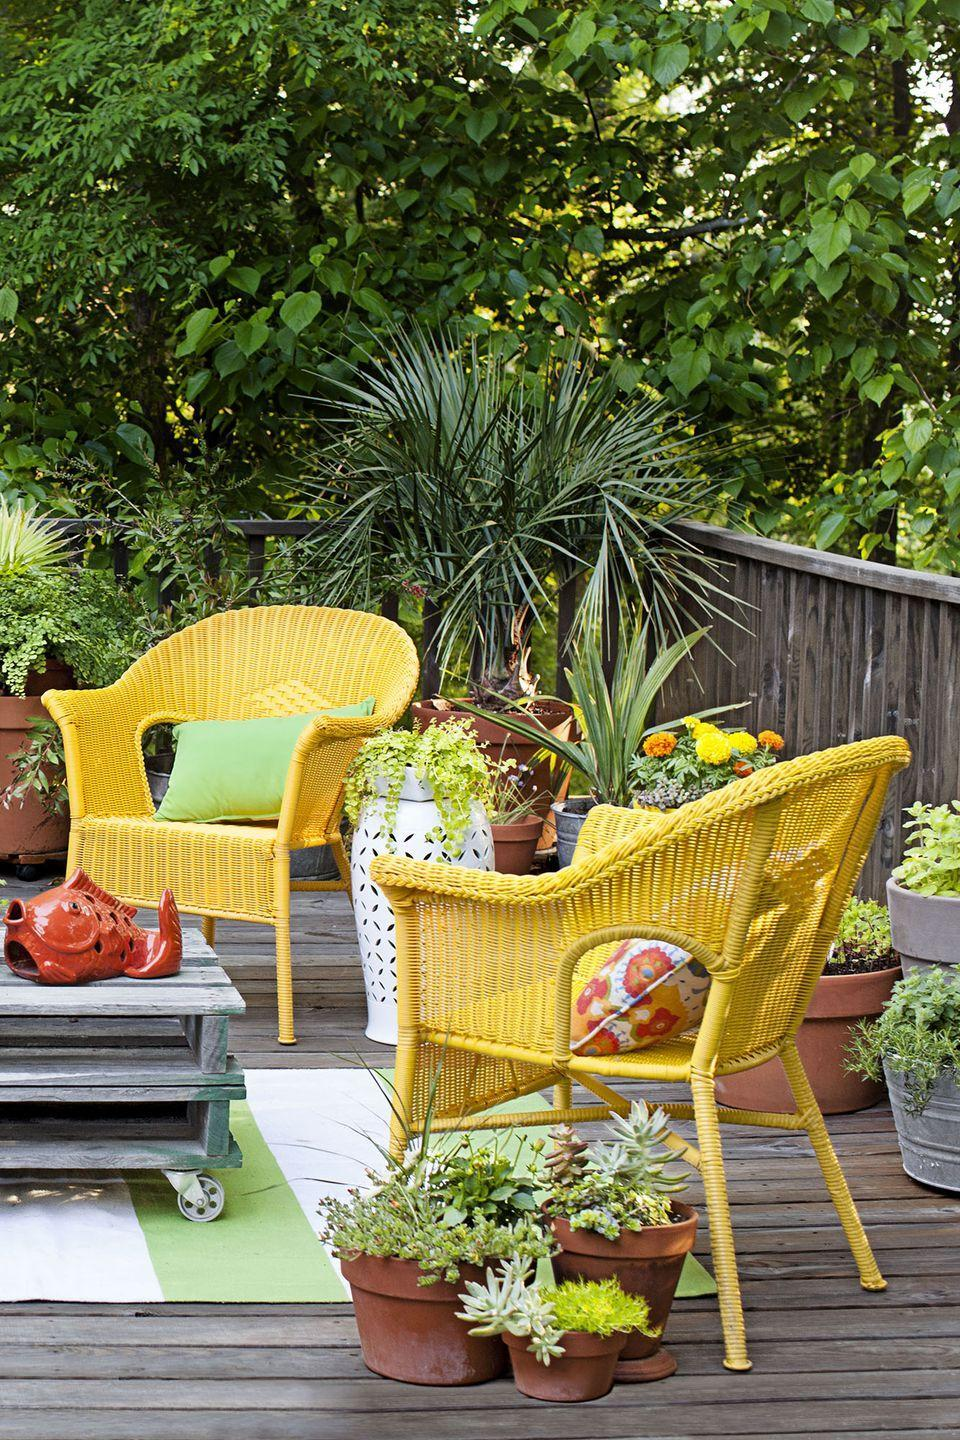 """<p>Boost your backyard's appeal by filling ceramic planters with flowers, succulents, and other plants. And if you want the satisfaction of watching something grow from seed to plant, consider herbs and small vegetables like broccoli and cabbage.</p><p><strong>RELATED:</strong> <a href=""""https://www.goodhousekeeping.com/home/gardening/a20707074/container-gardening-tips/"""" rel=""""nofollow noopener"""" target=""""_blank"""" data-ylk=""""slk:What You Need to Know About Container Gardening"""" class=""""link rapid-noclick-resp"""">What You Need to Know About Container Gardening </a></p>"""